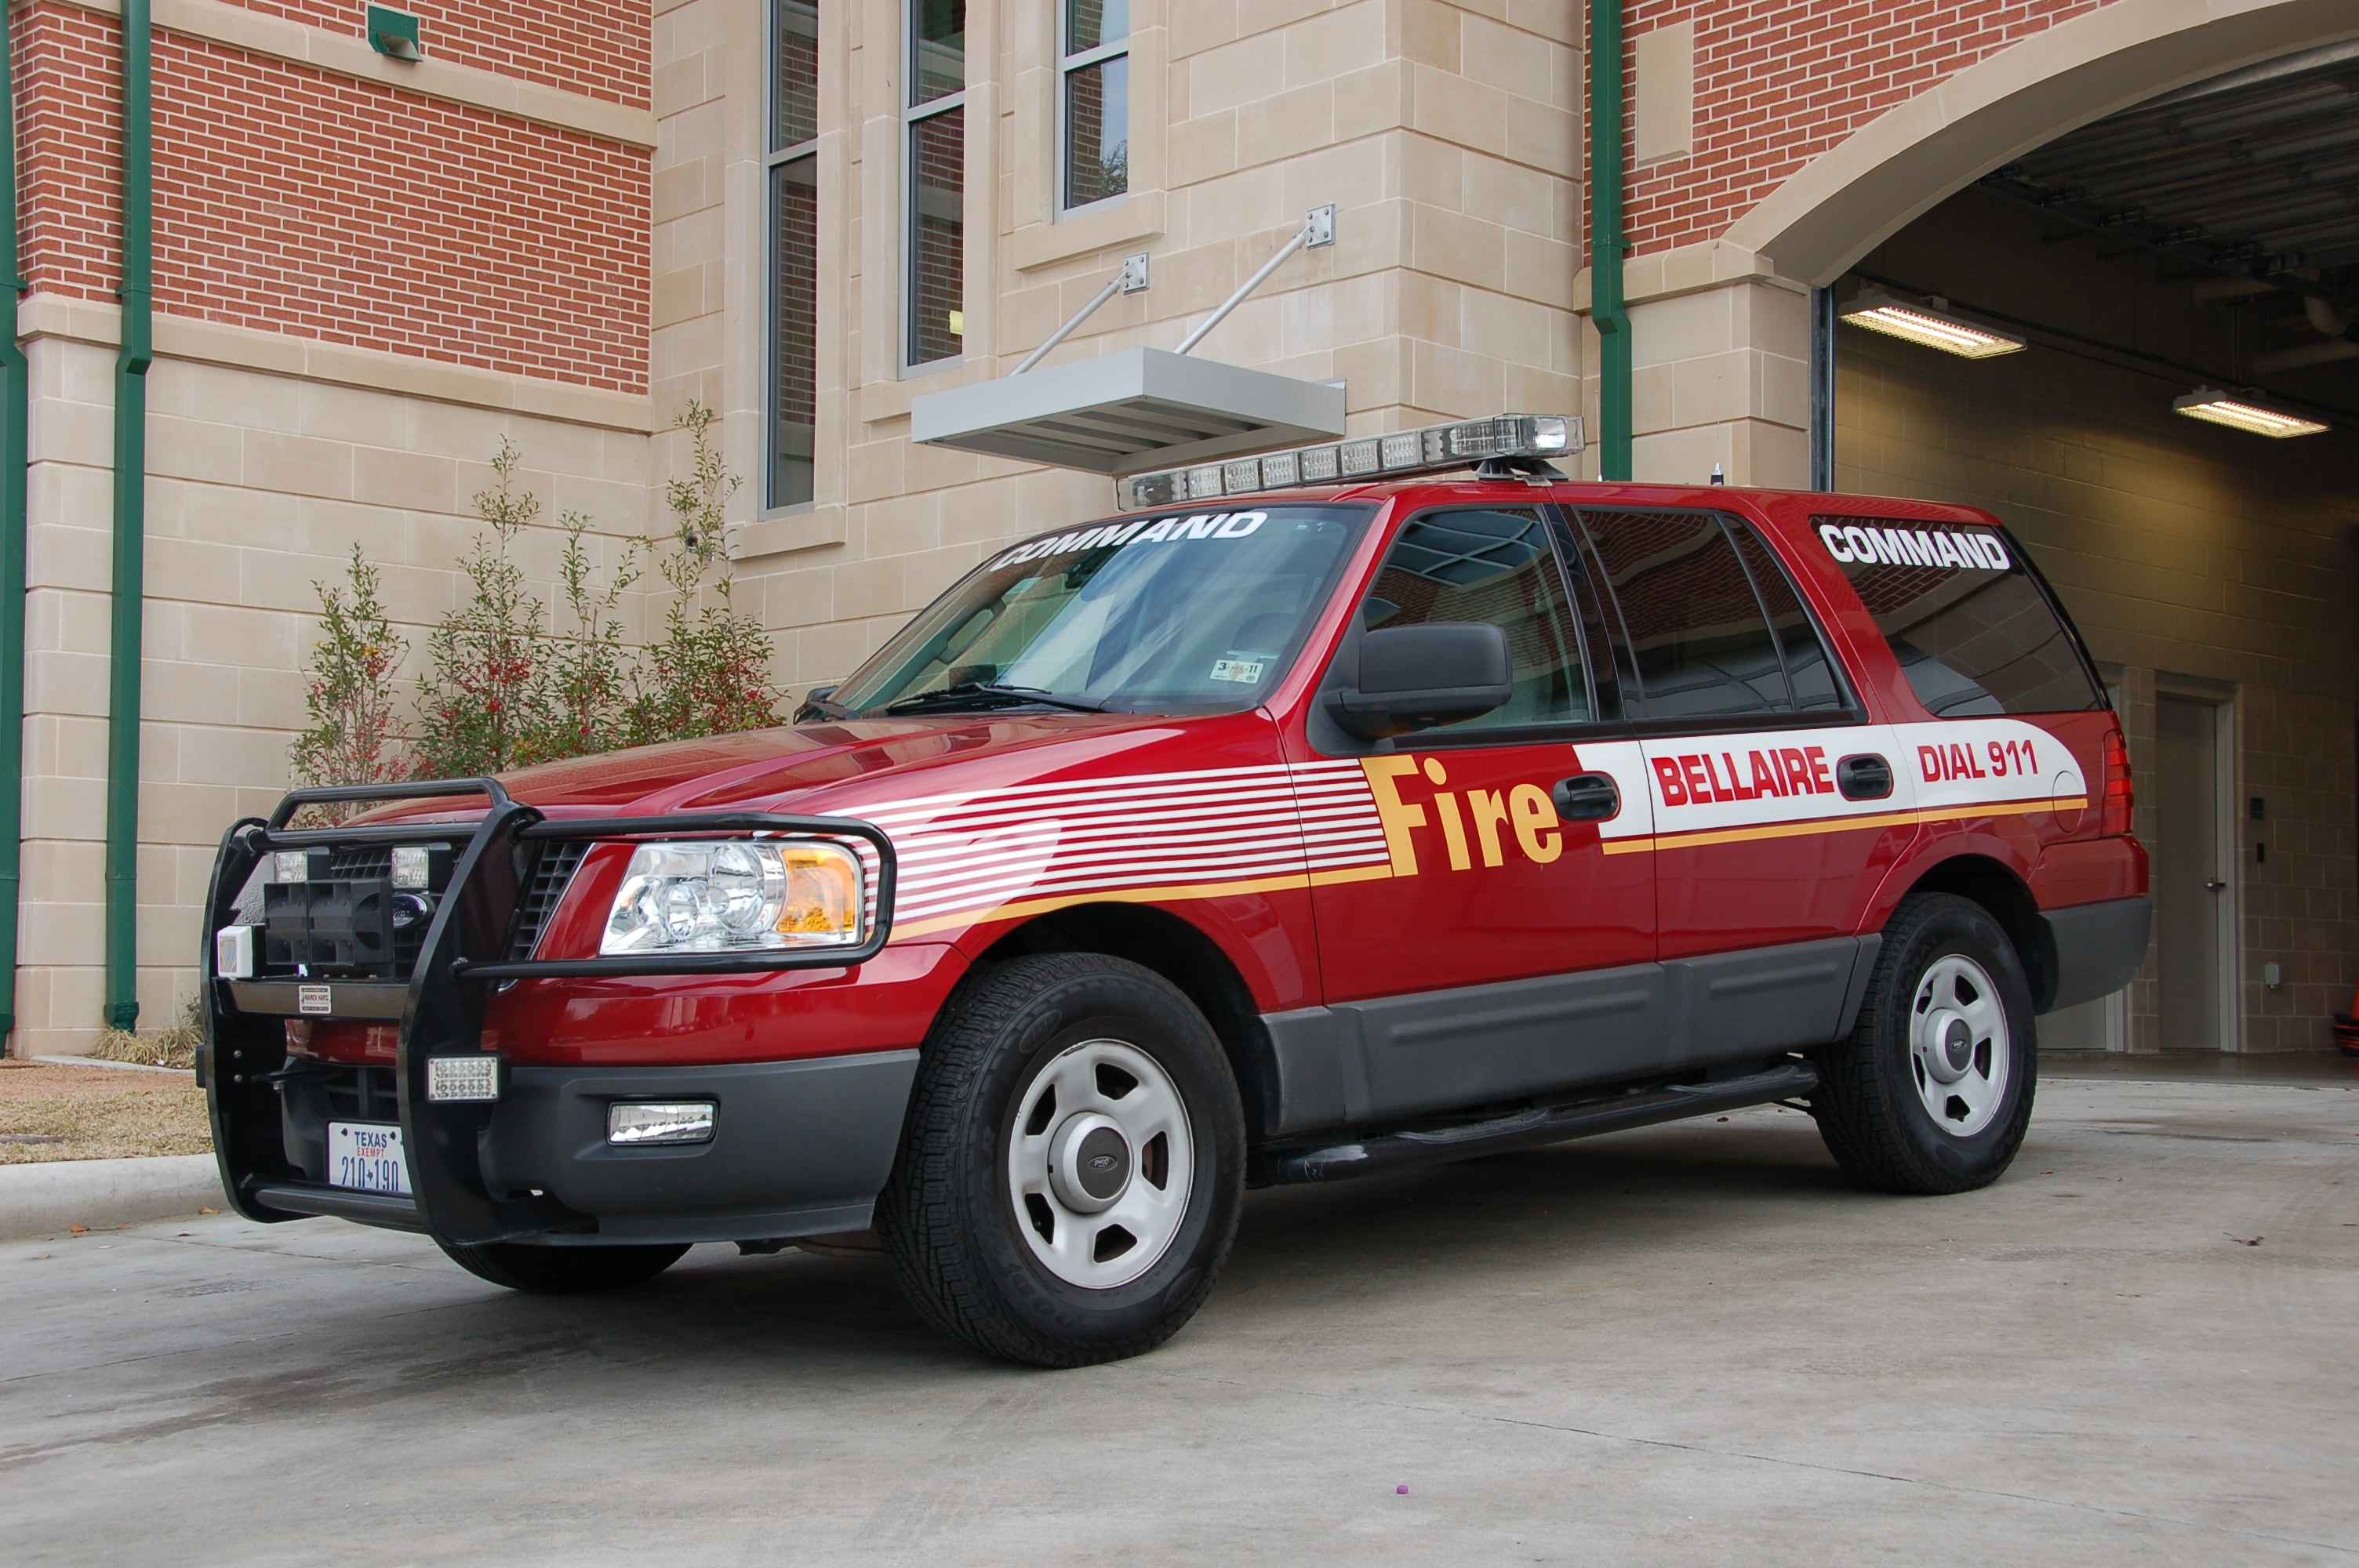 Fire Department Command Vehicle